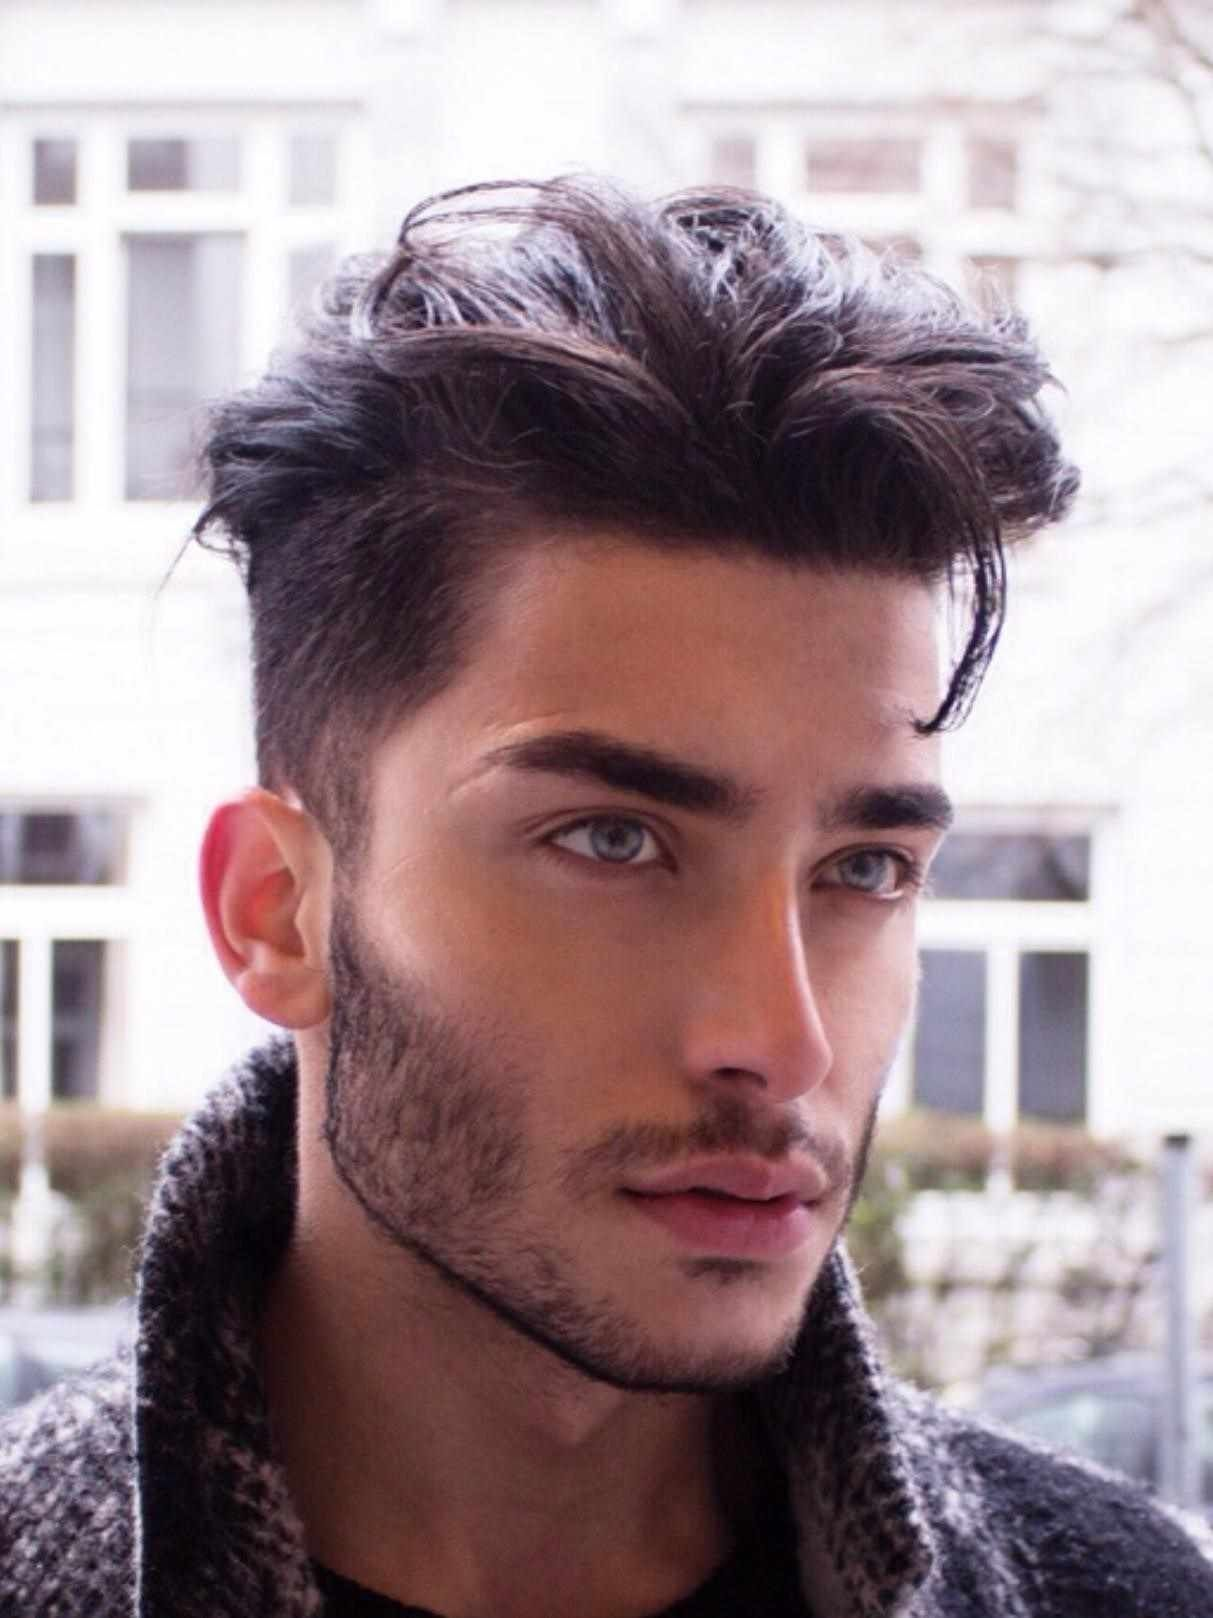 Haircut styles for men 2018 oval mens hairstyles   clothing  pinterest  hair hair styles